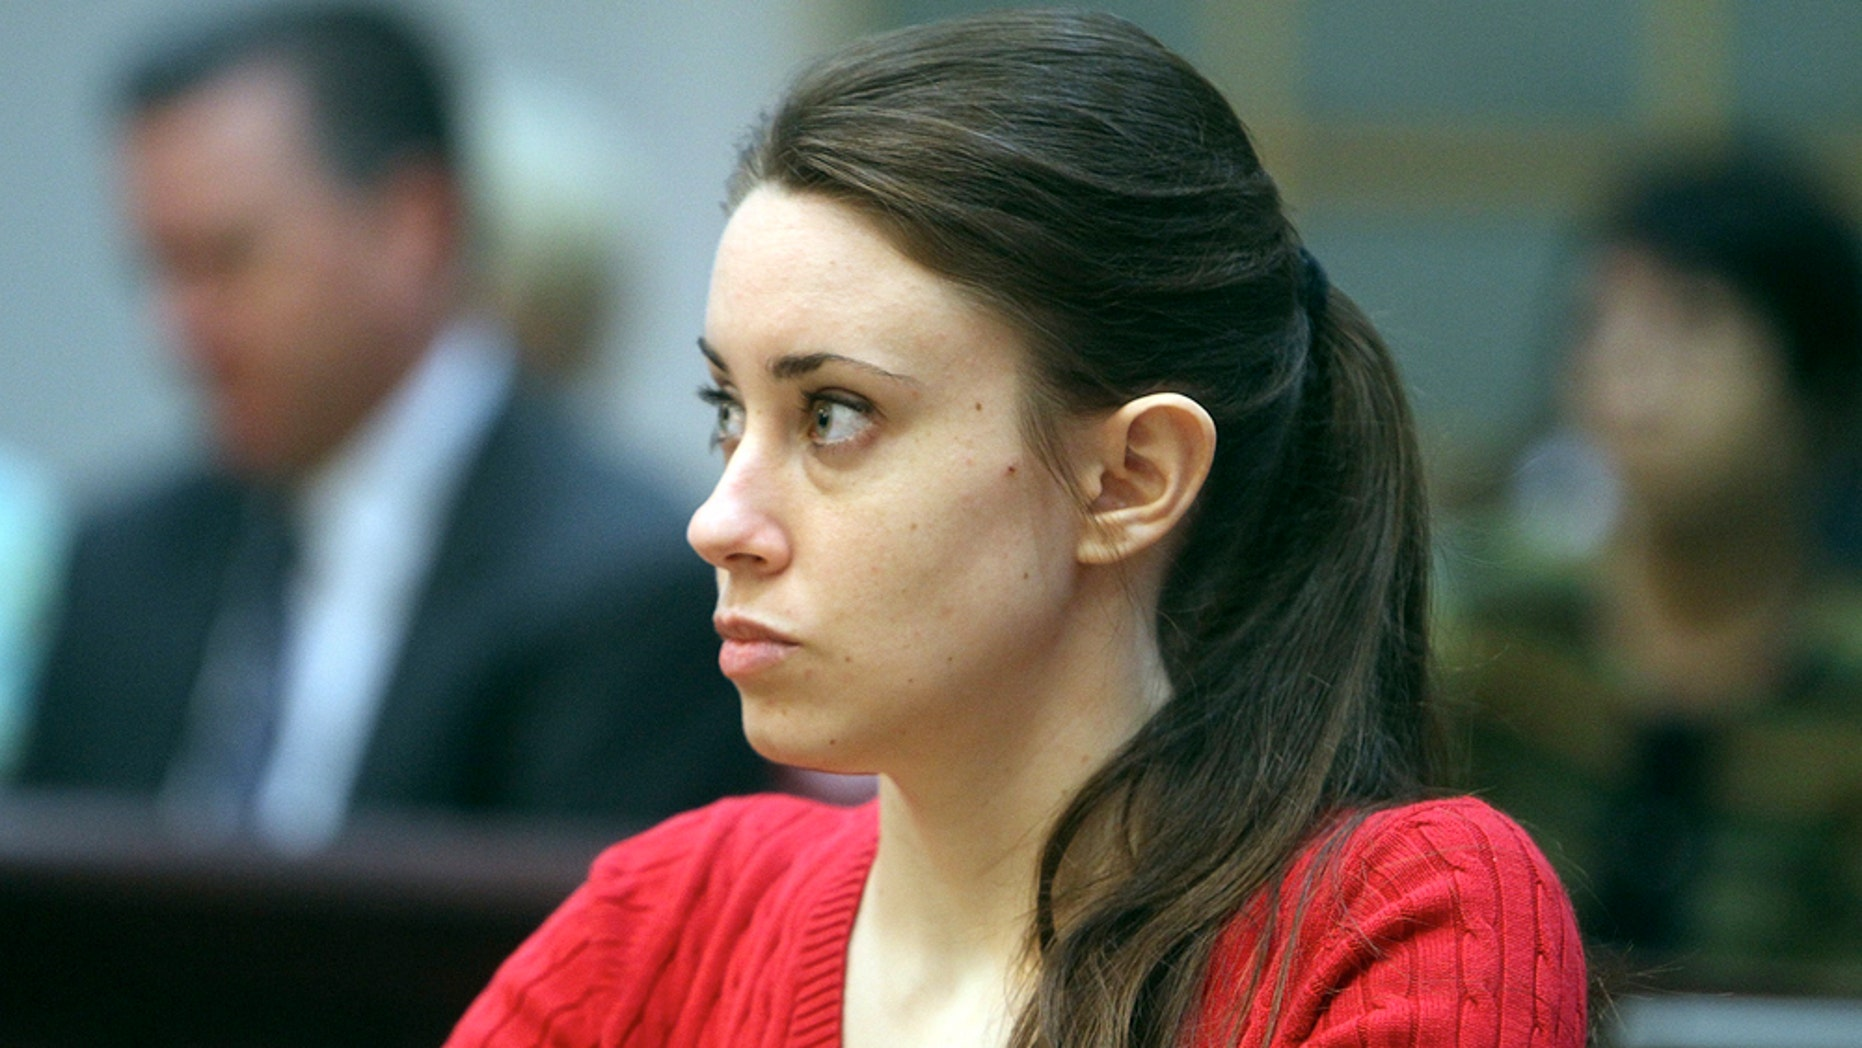 Casey Anthony, 24, sits in a courtroom in Orlando, Fla. for the first of a two-day hearing on a series of motions by the defense and the prosecution for her murder trial.